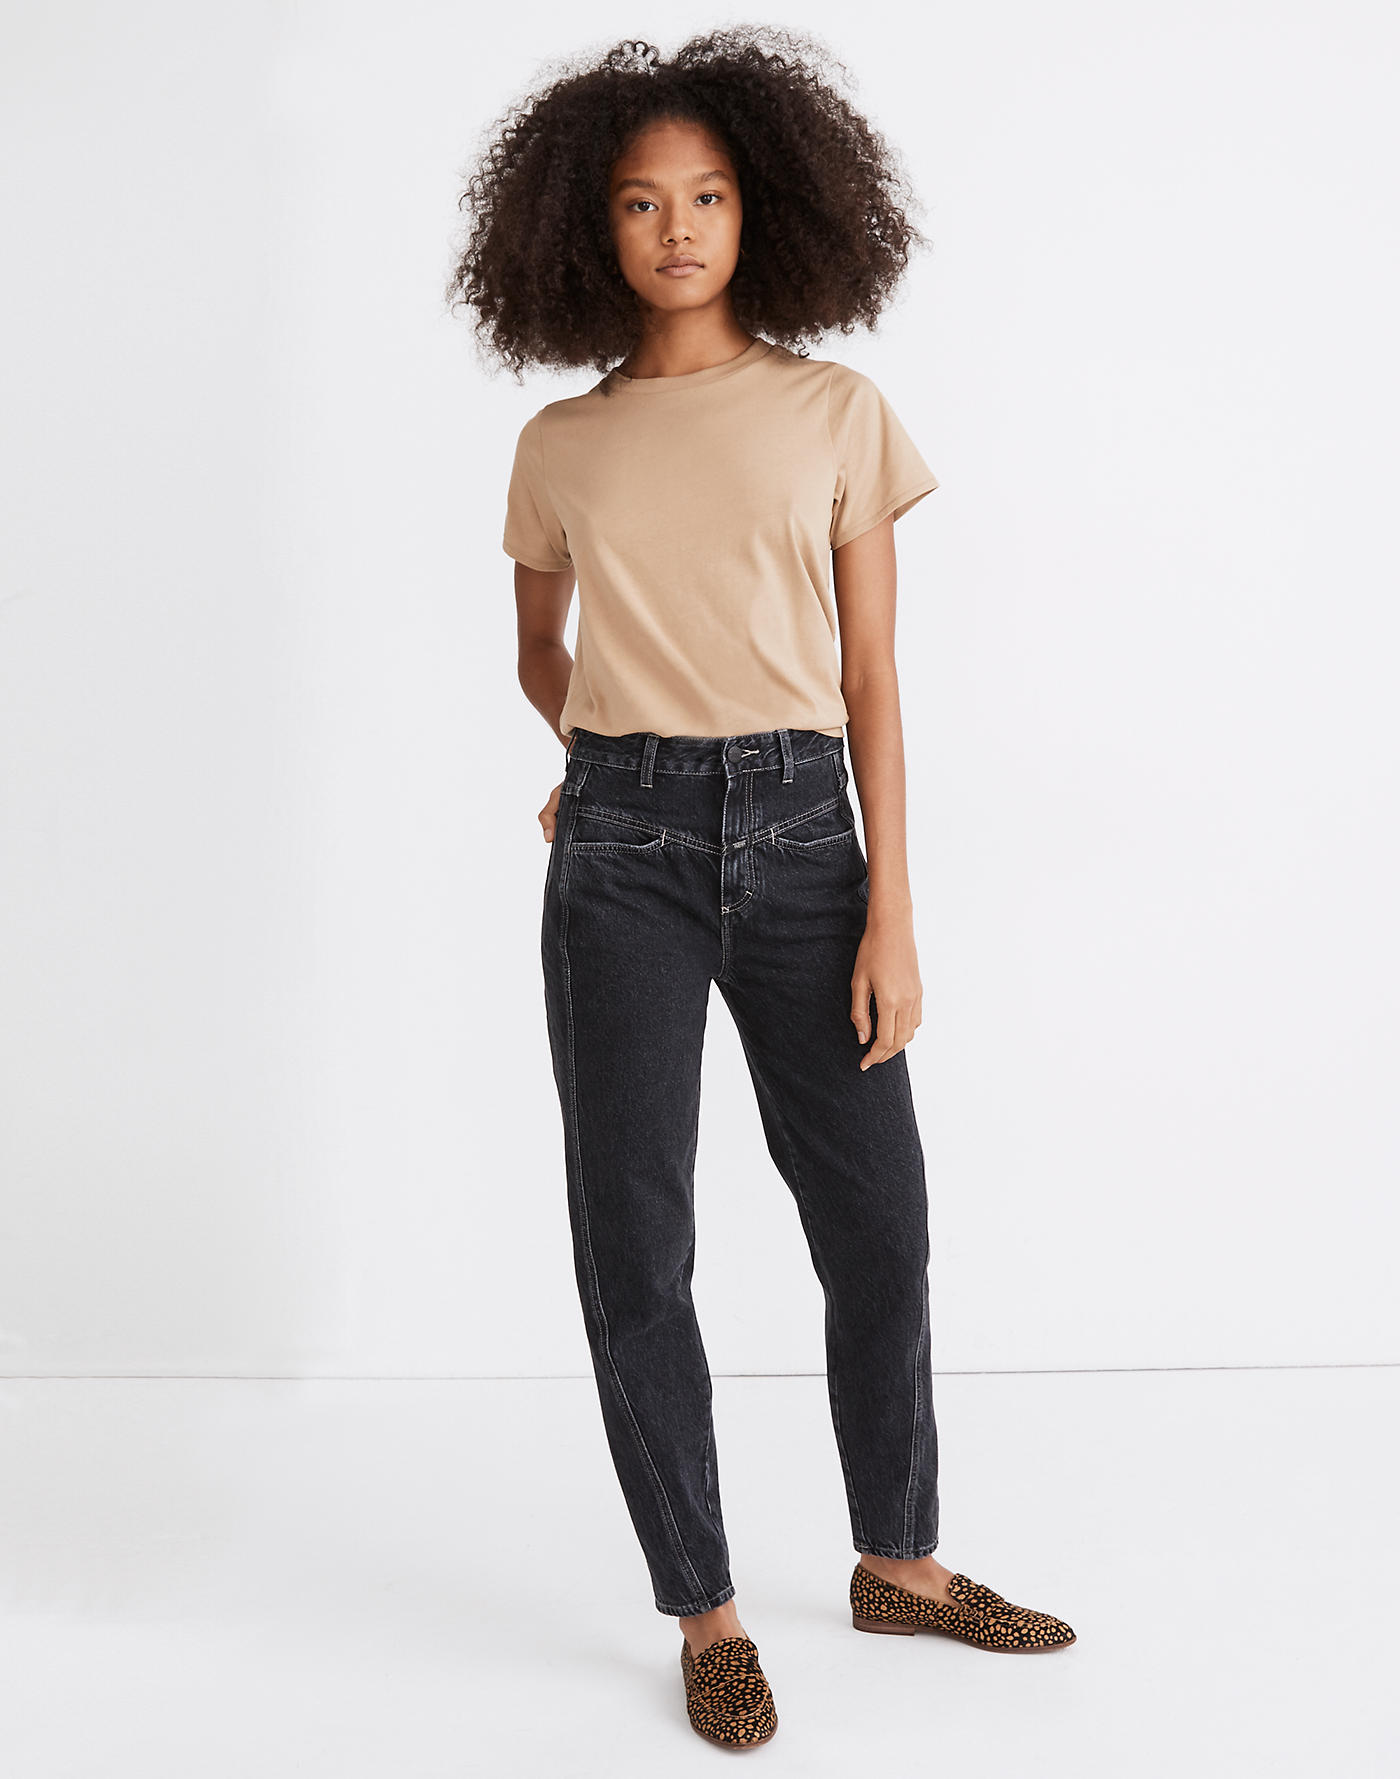 Madewell Closed Pedal Twist Relaxed Jeans